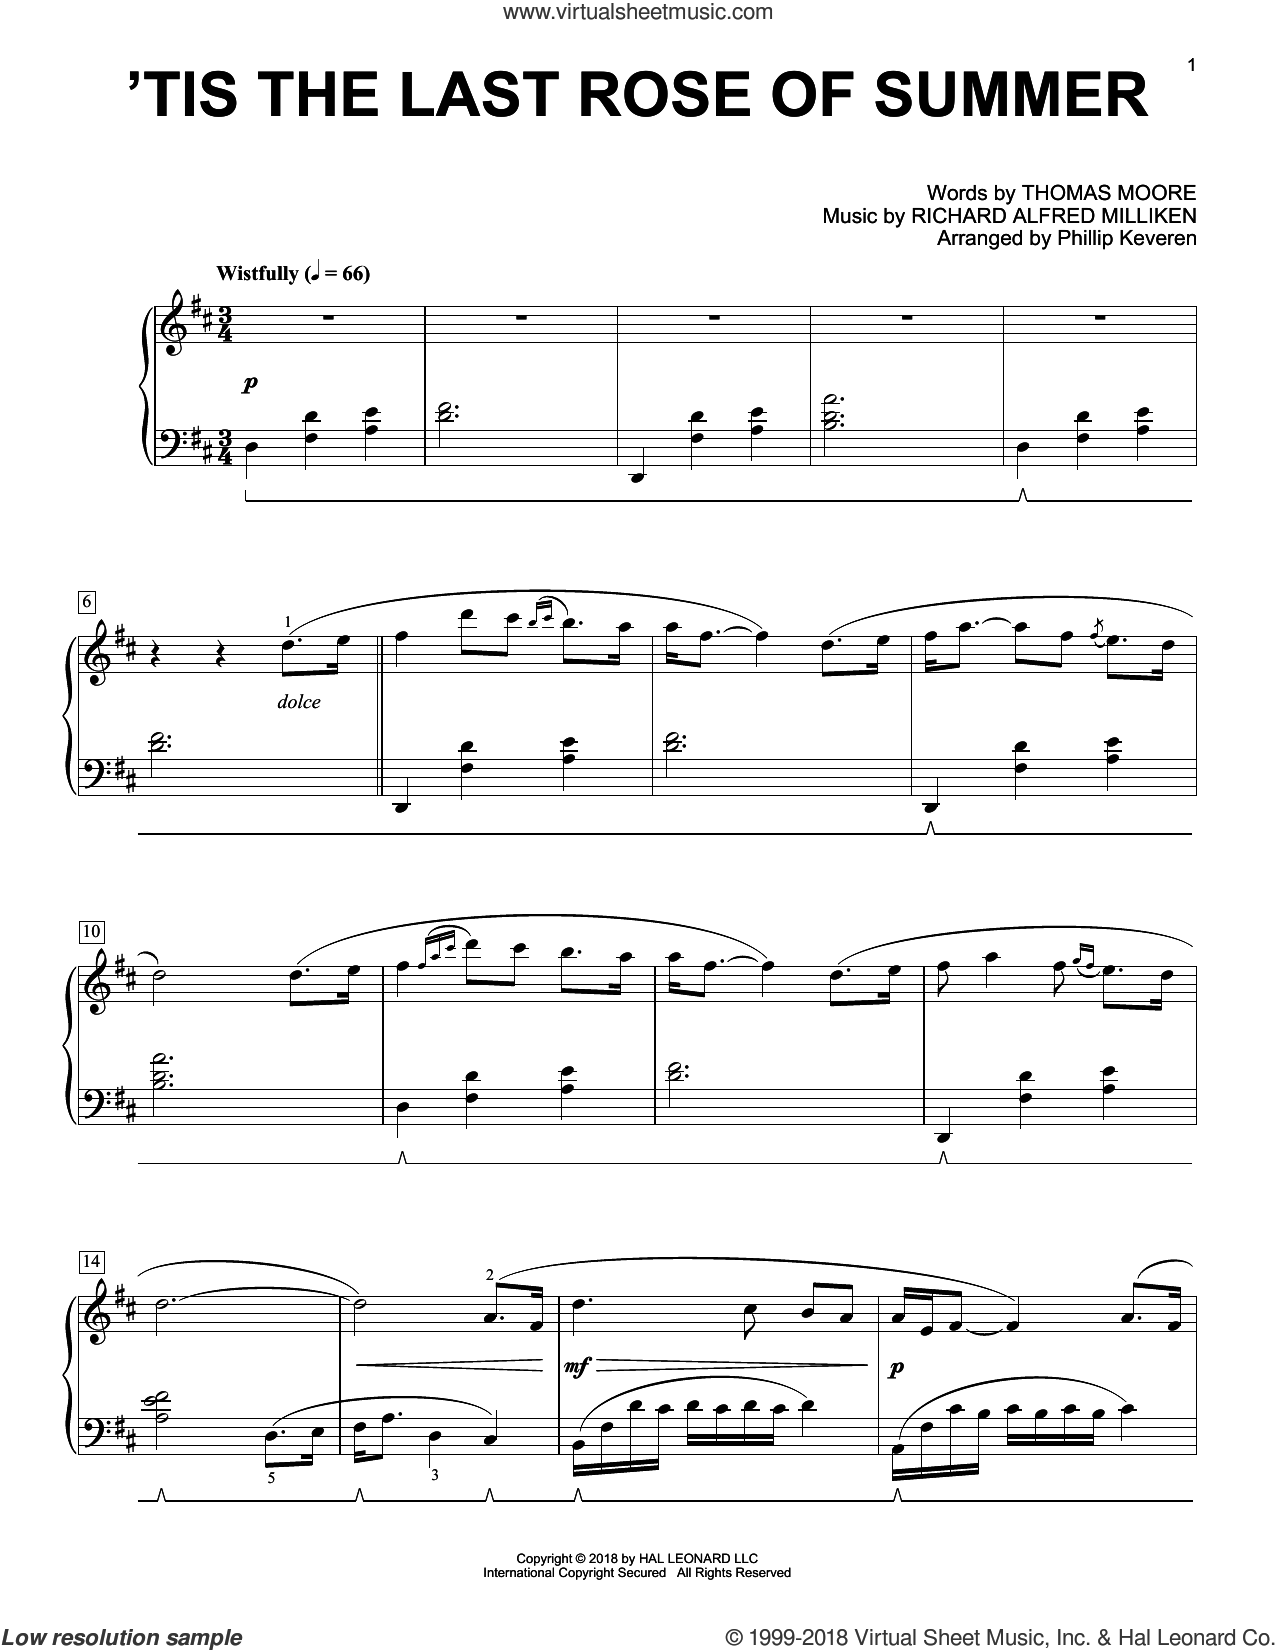 'Tis The Last Rose Of Summer [Classical version] (arr. Phillip Keveren) sheet music for piano solo by Phillip Keveren, Miscellaneous, Richard Alfred Milliken and Thomas Moore, intermediate skill level